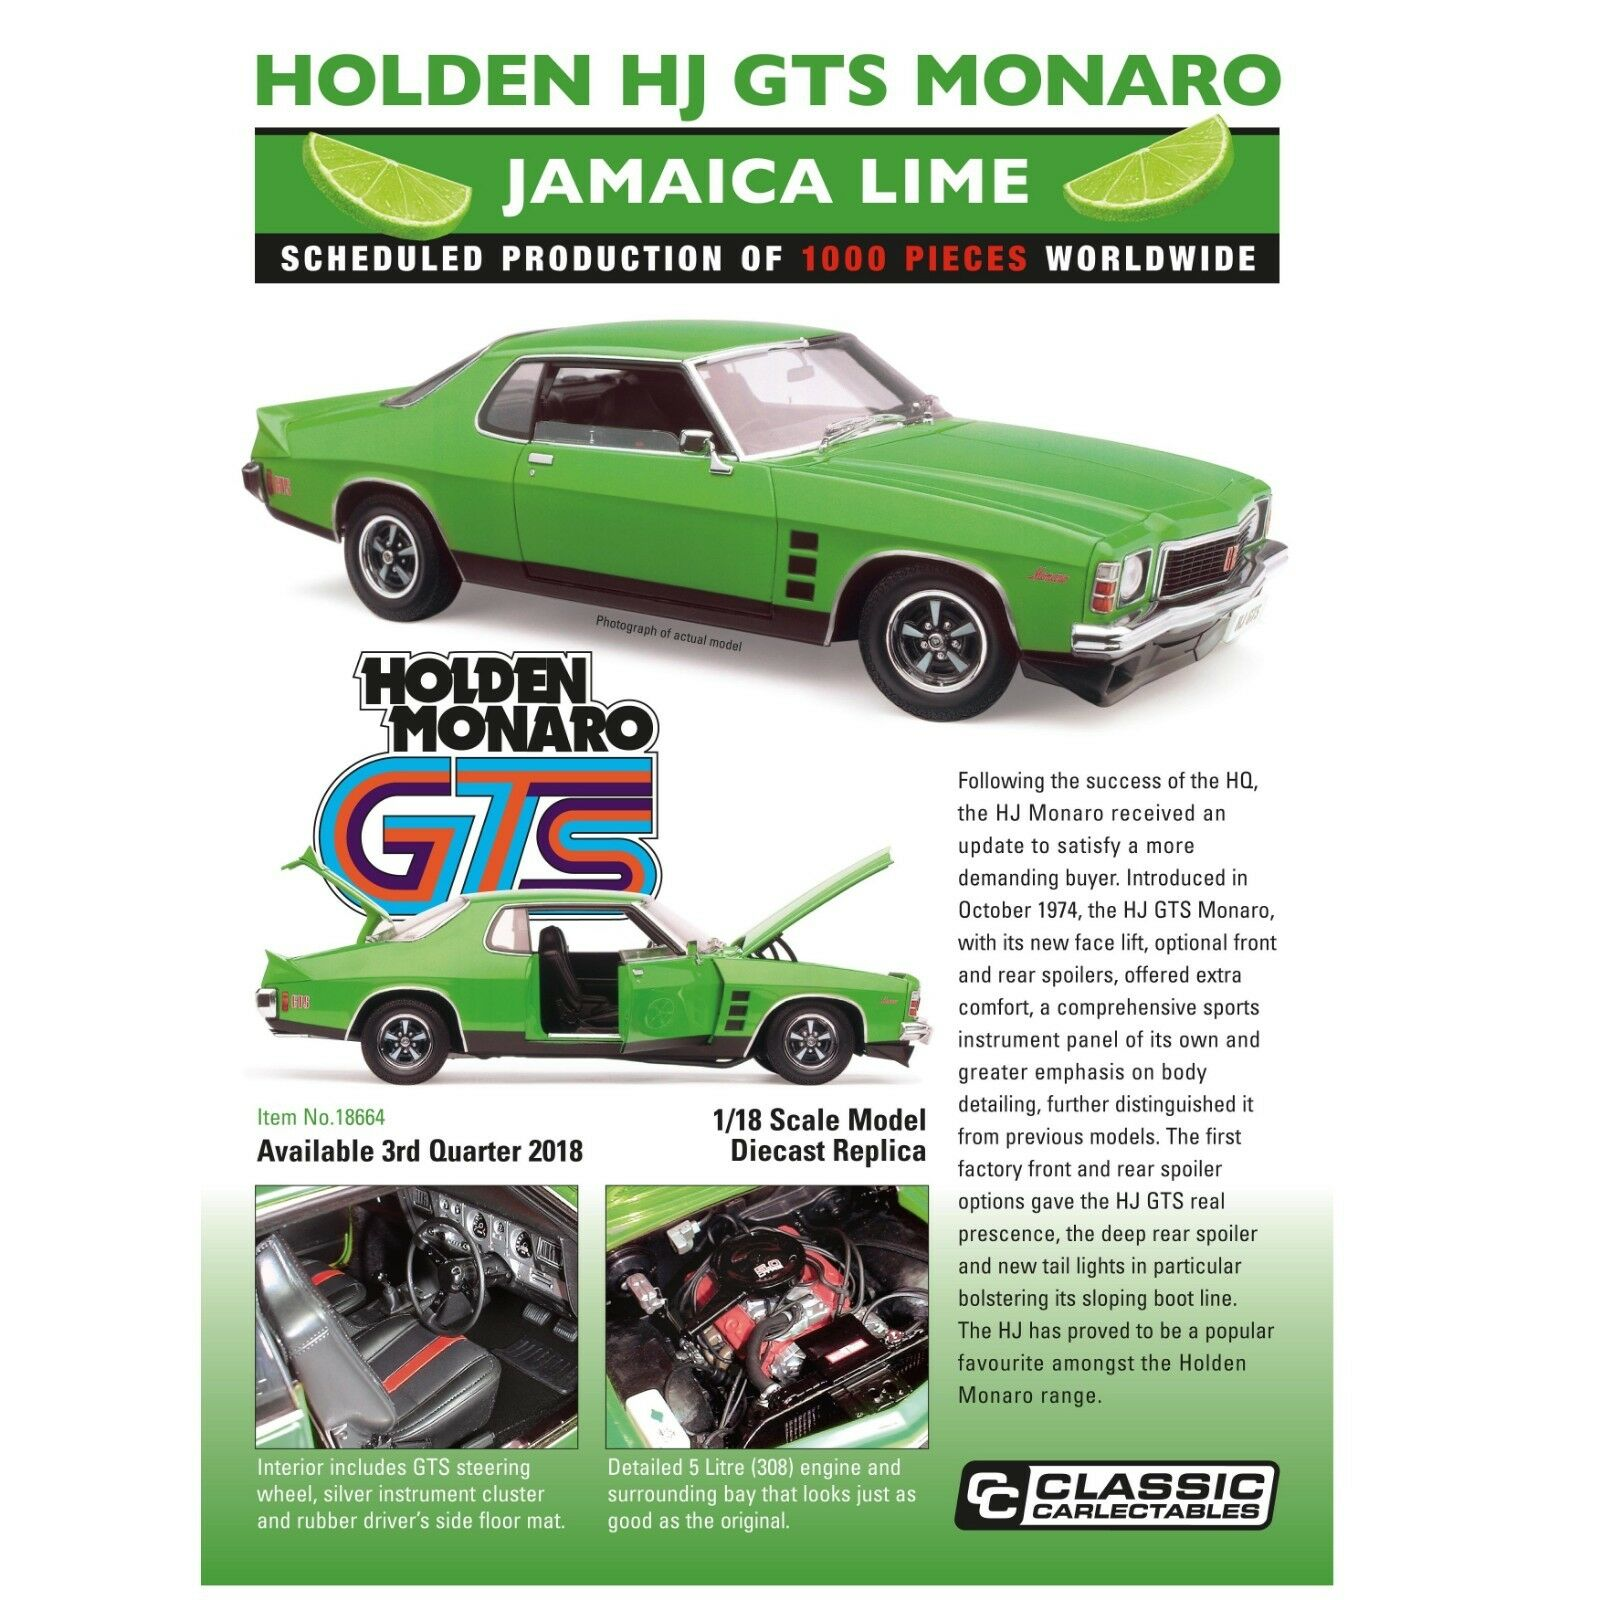 Classic Carlectables 1 18 Scale Holden HJ GTS Monaro Coupe in Jamaica Lime